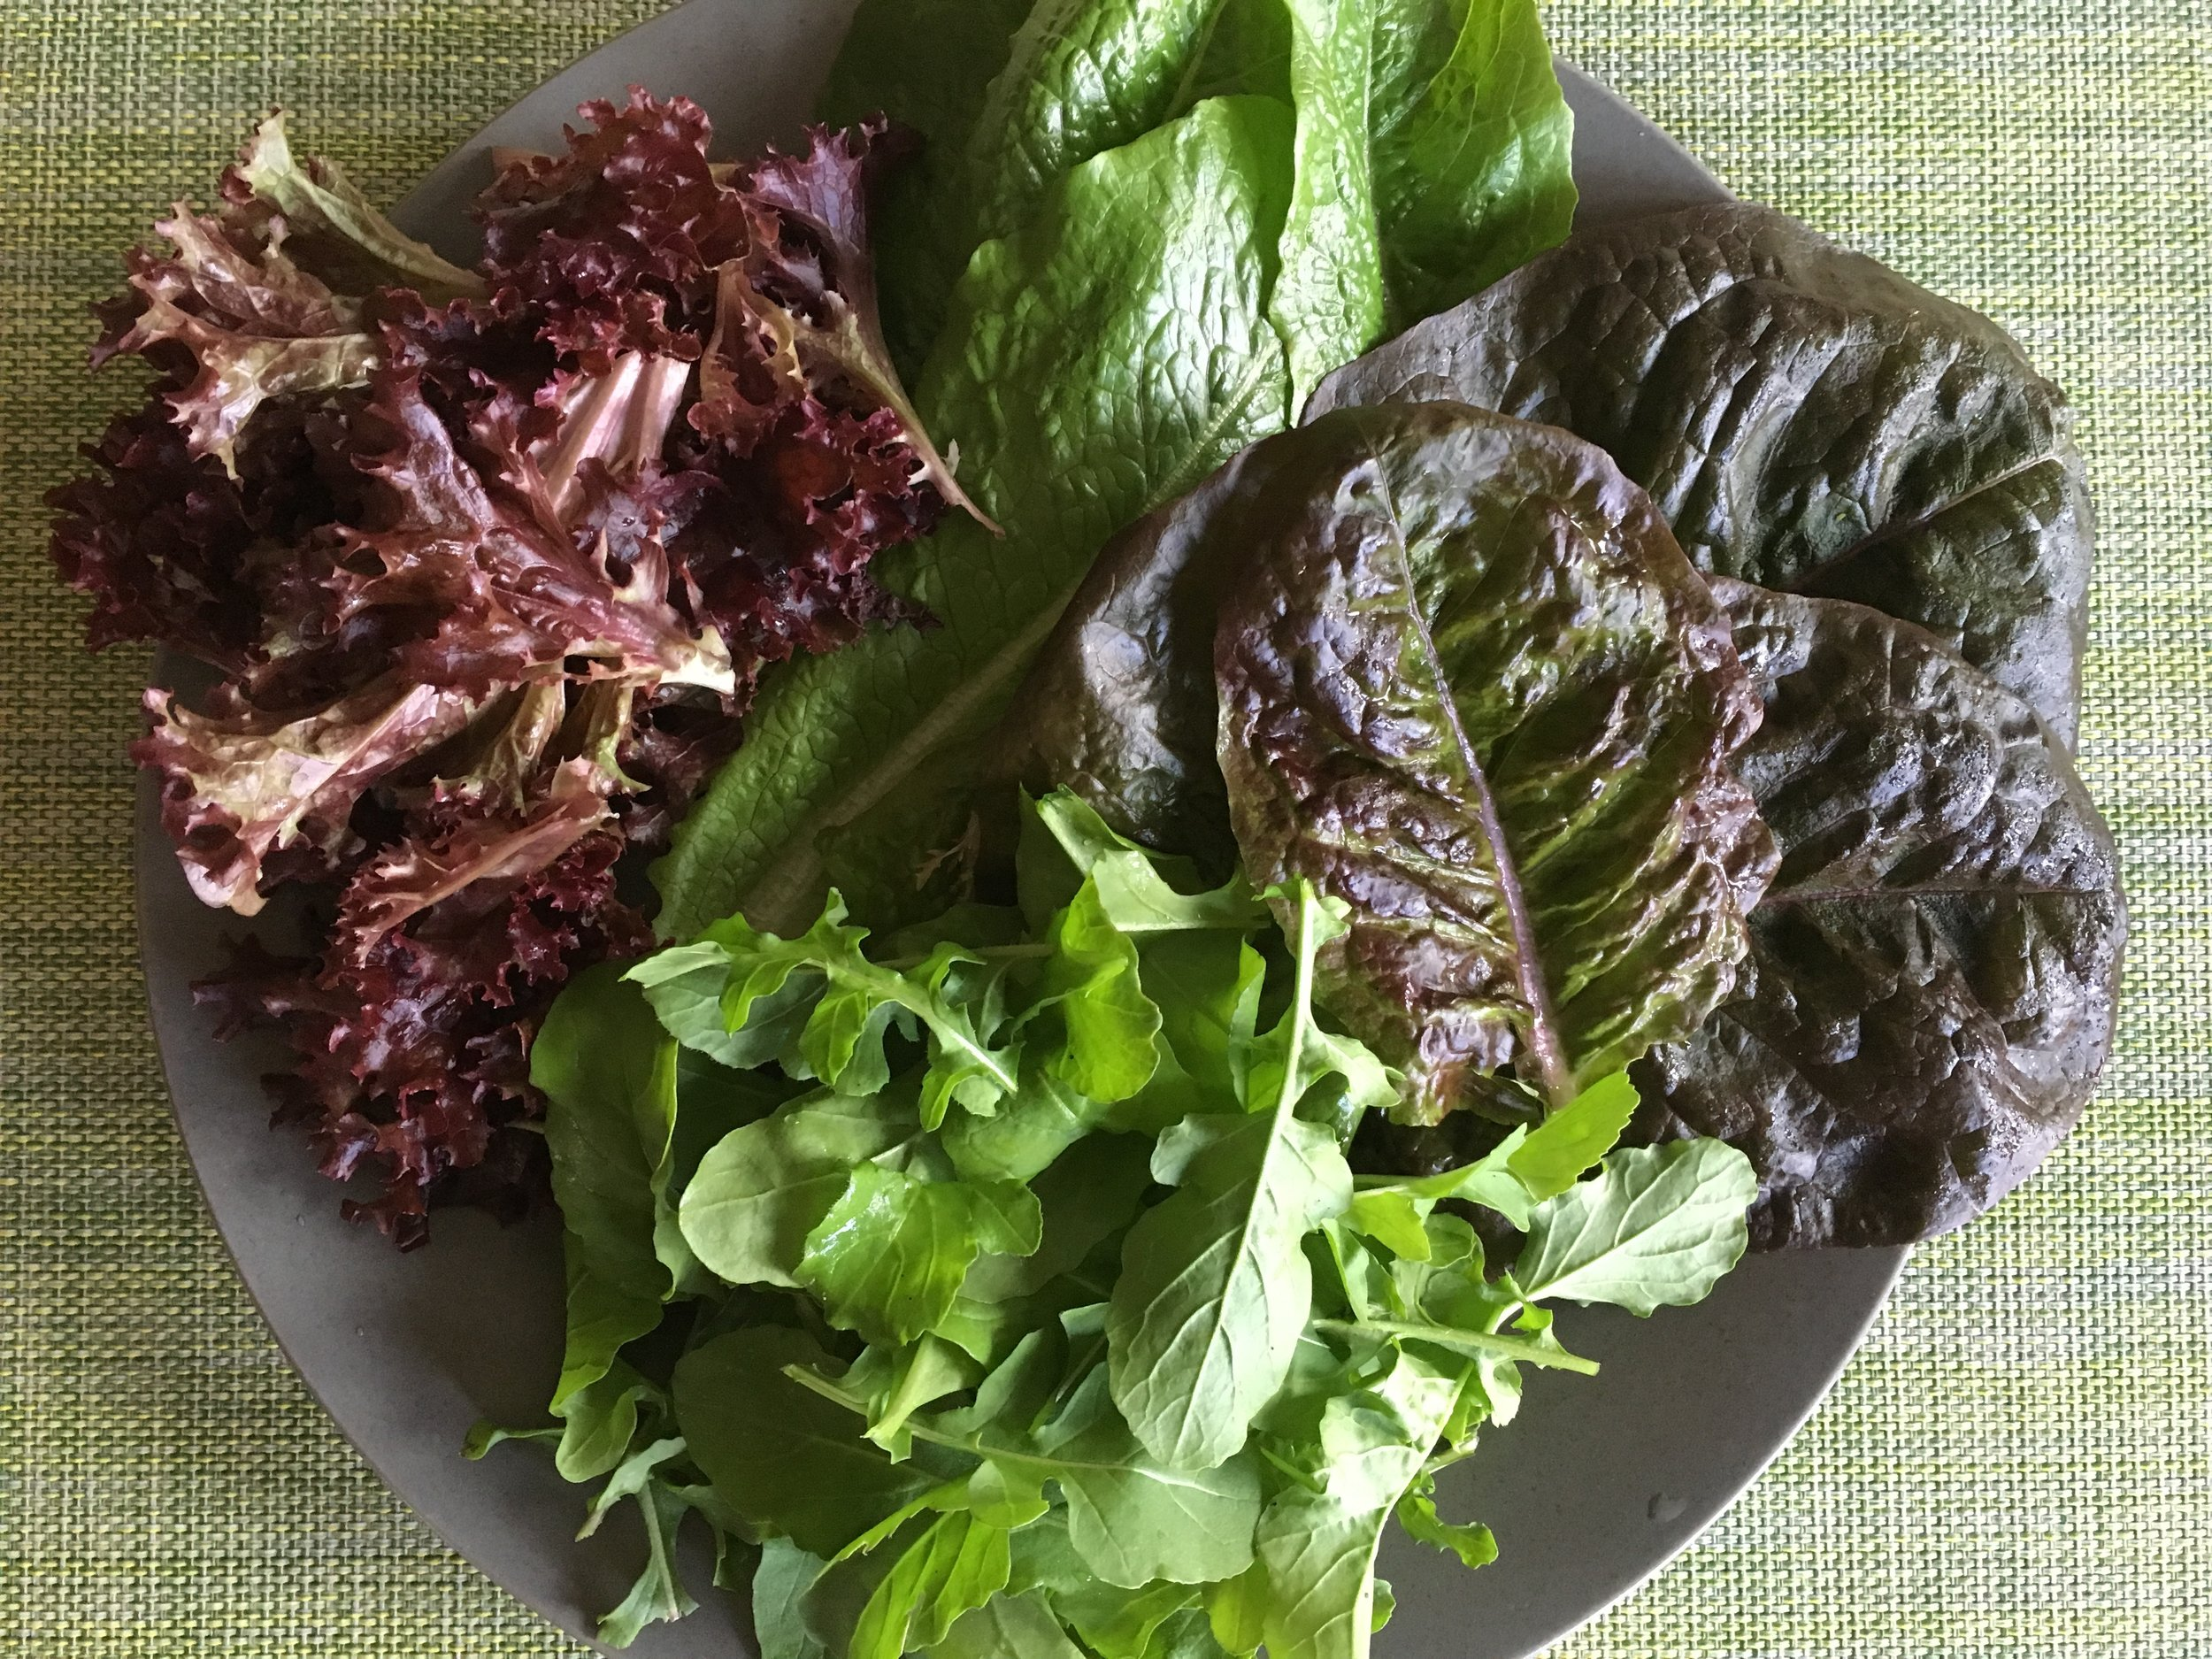 Various lettuces and arugula for a dinner salad.